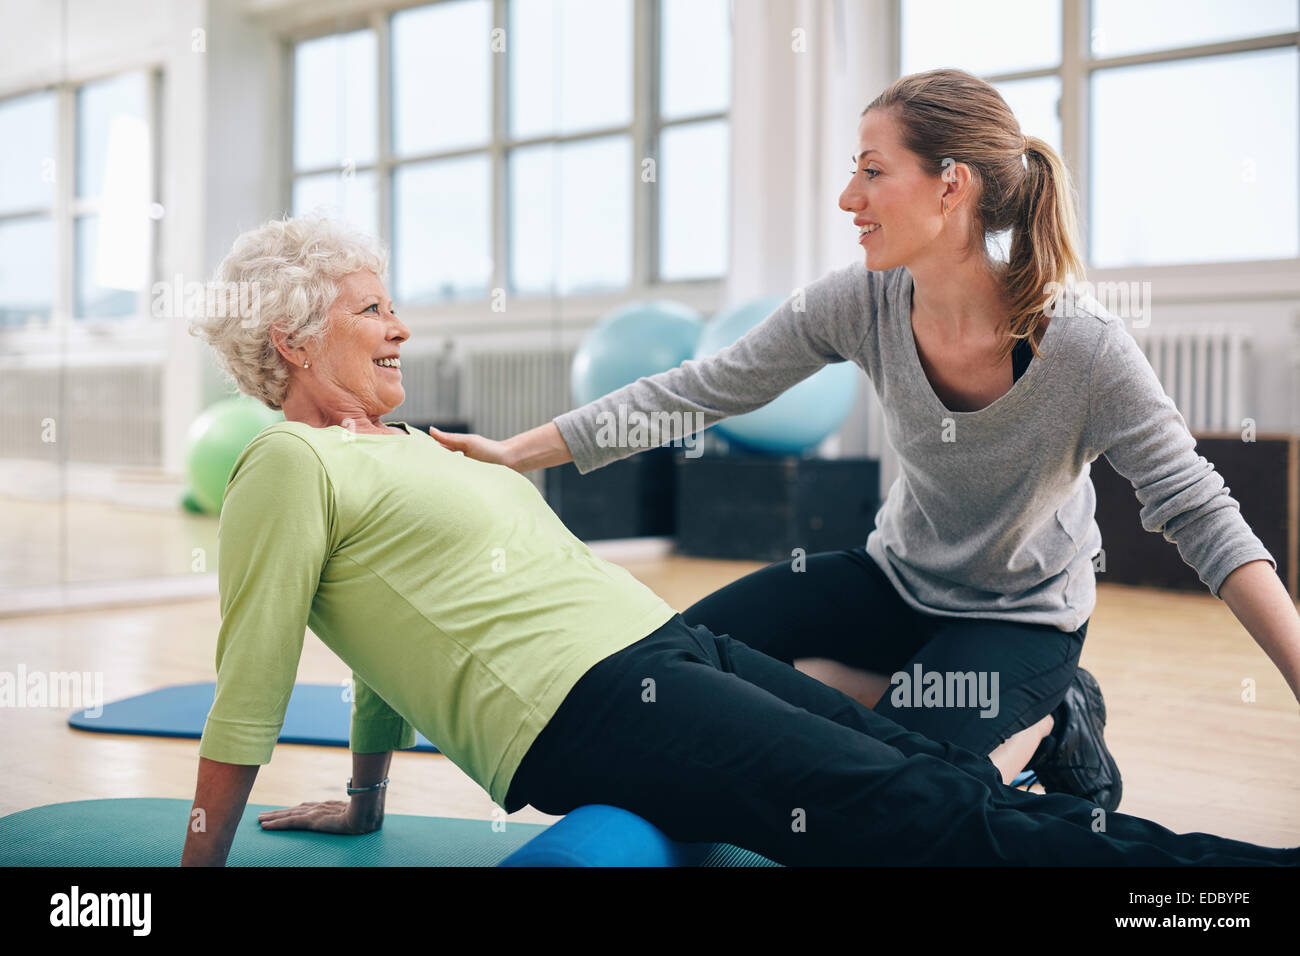 Physical therapist working with a senior woman at rehab. Female trainer helping senior woman doing exercise on foam - Stock Image